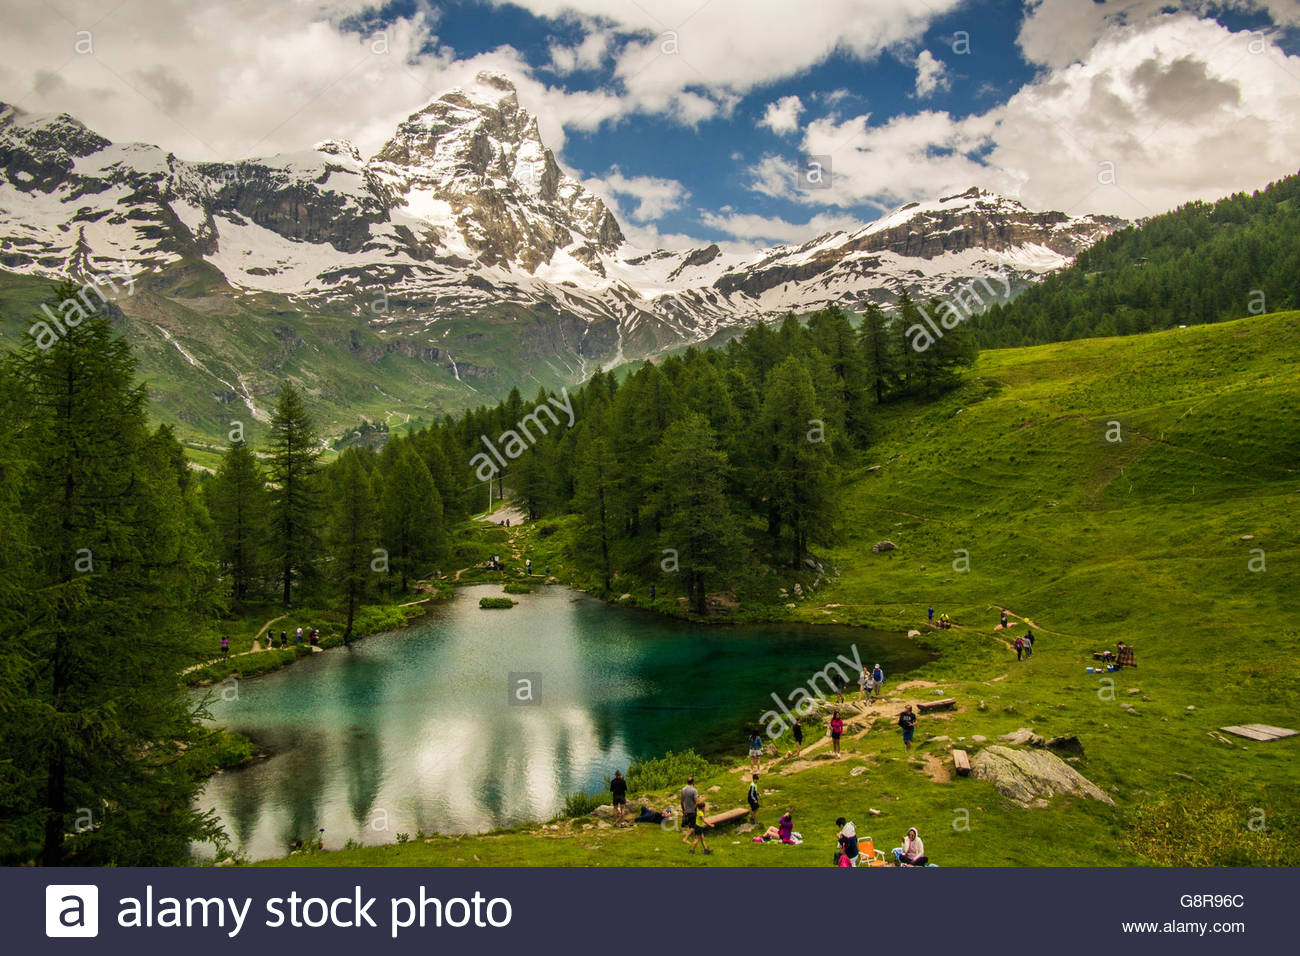 Lago Blu (Blue Lake) in the Aosta Valley, with the Cervino mountain (aka Matterhorn in Switzerland), Italy. - Stock Image